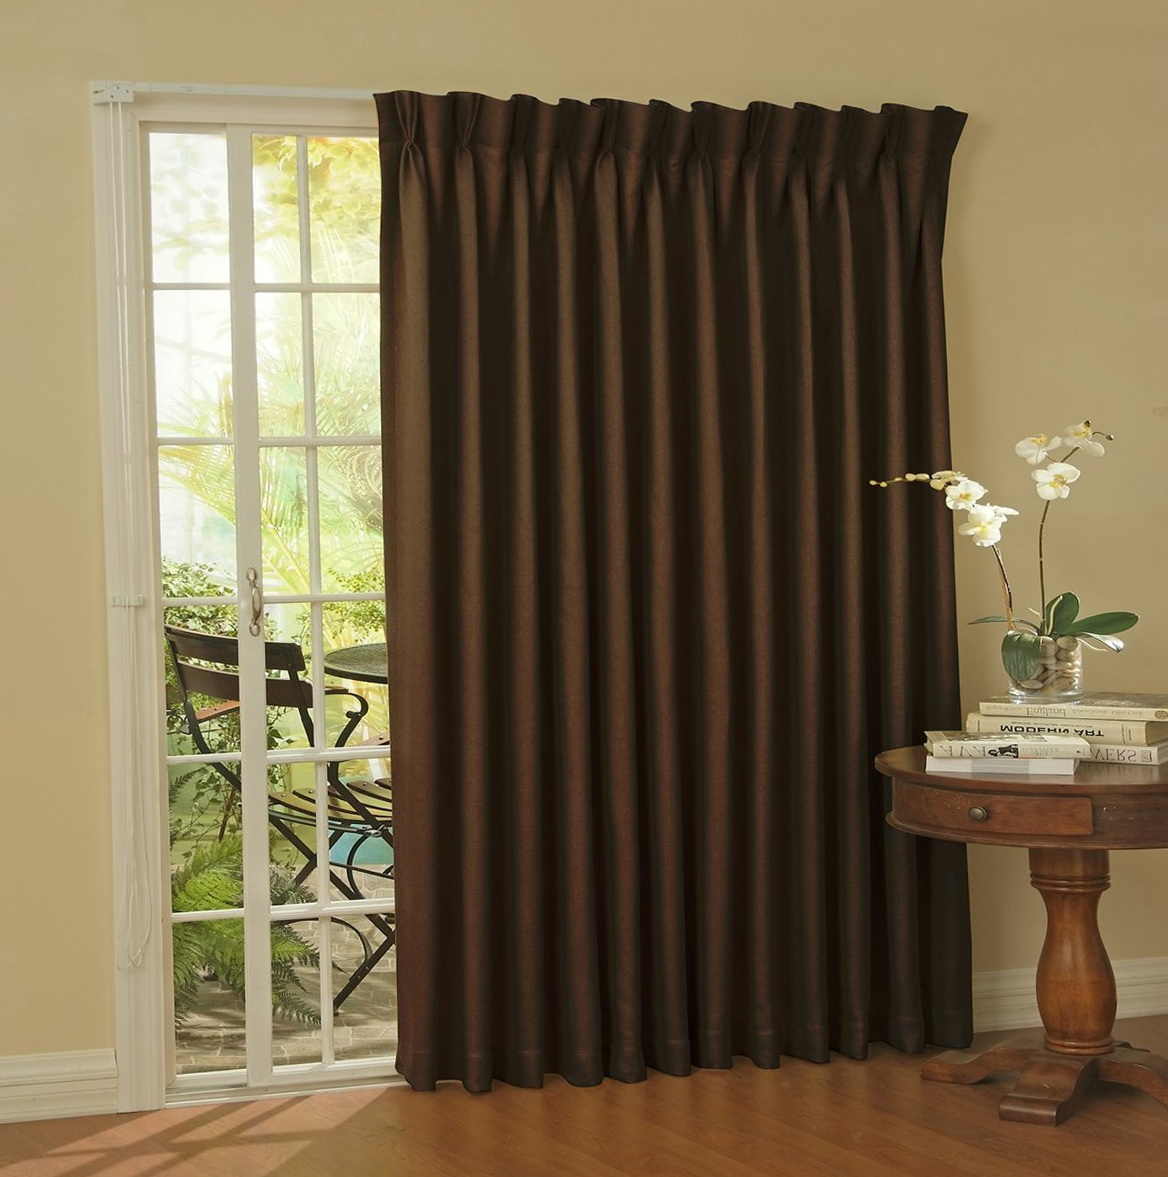 Sliding Window Curtain Panels